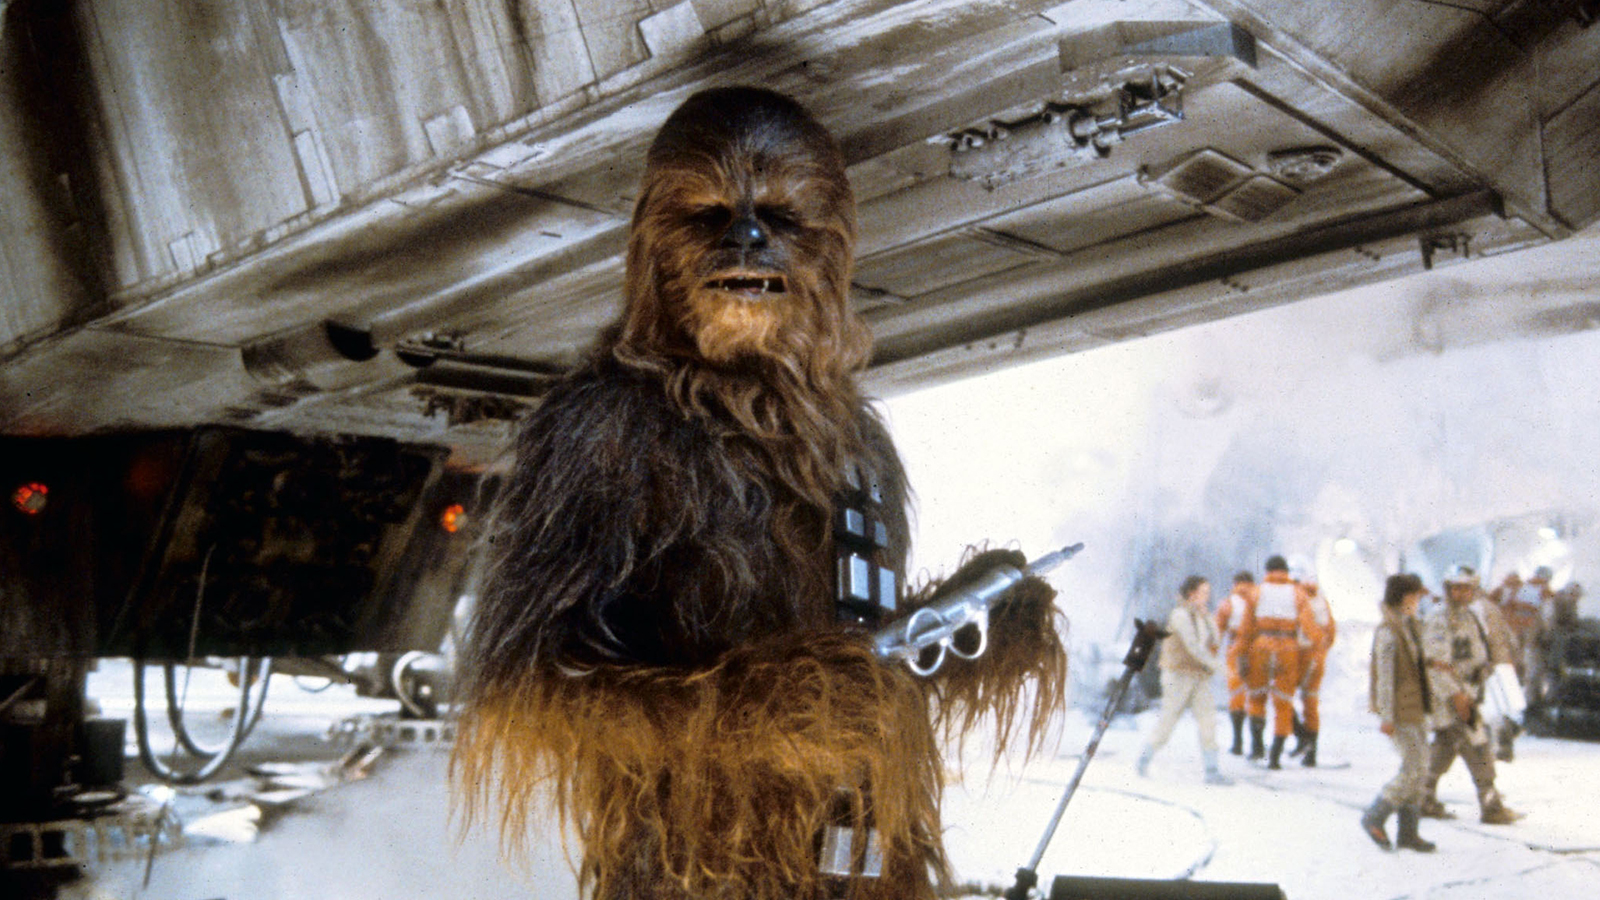 The *new* Chewbacca just penned a touching tribute to the OG Chewbacca, Peter Mayhew